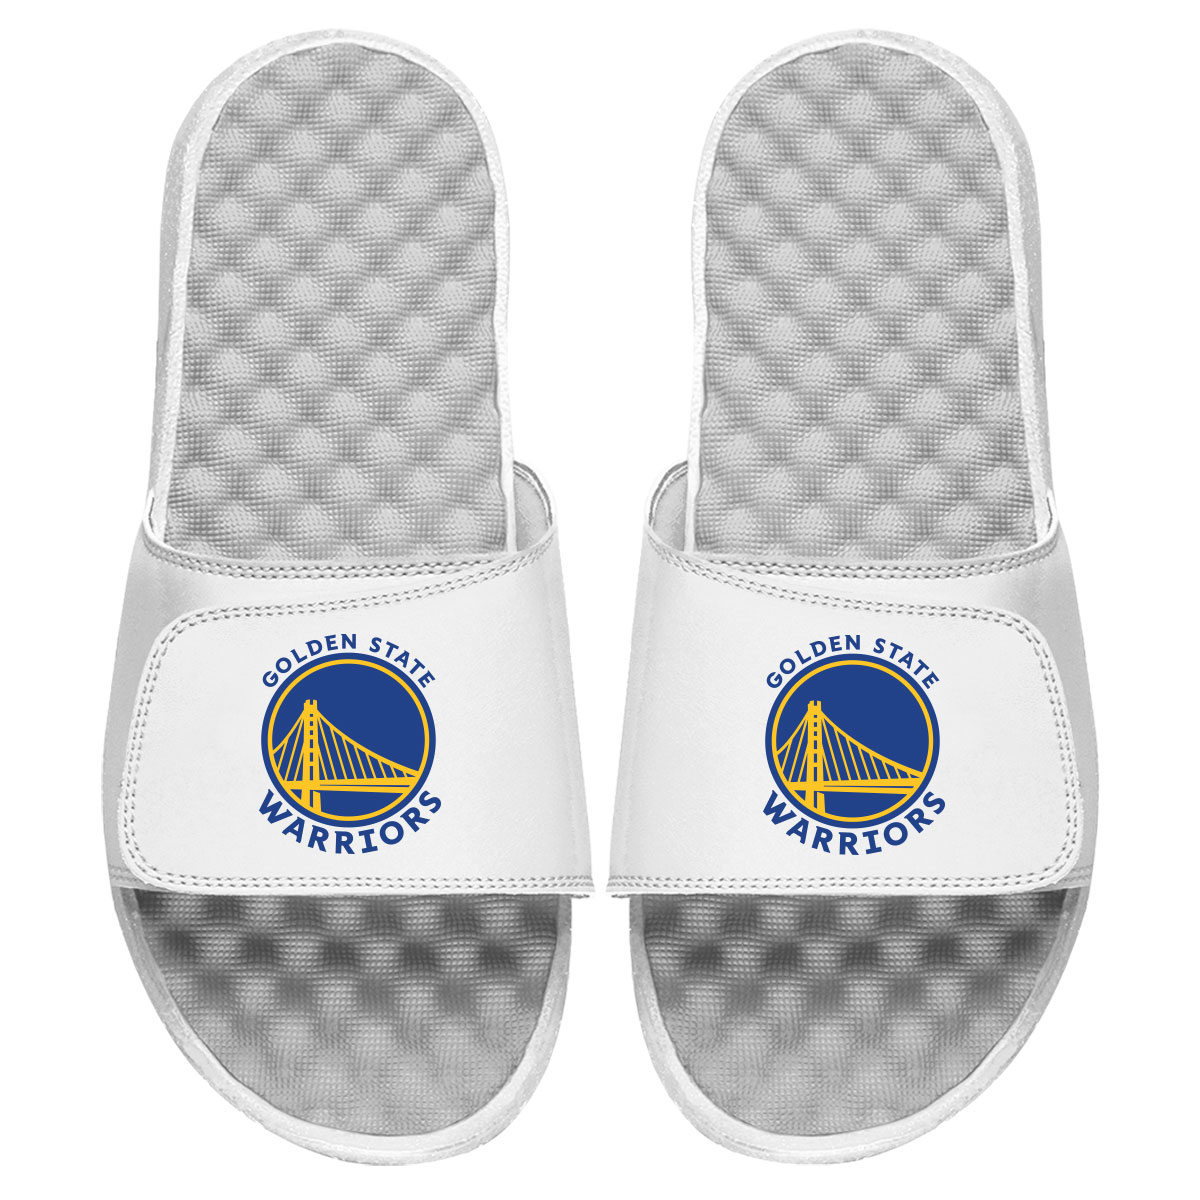 Golden State Warriors ISlide Youth